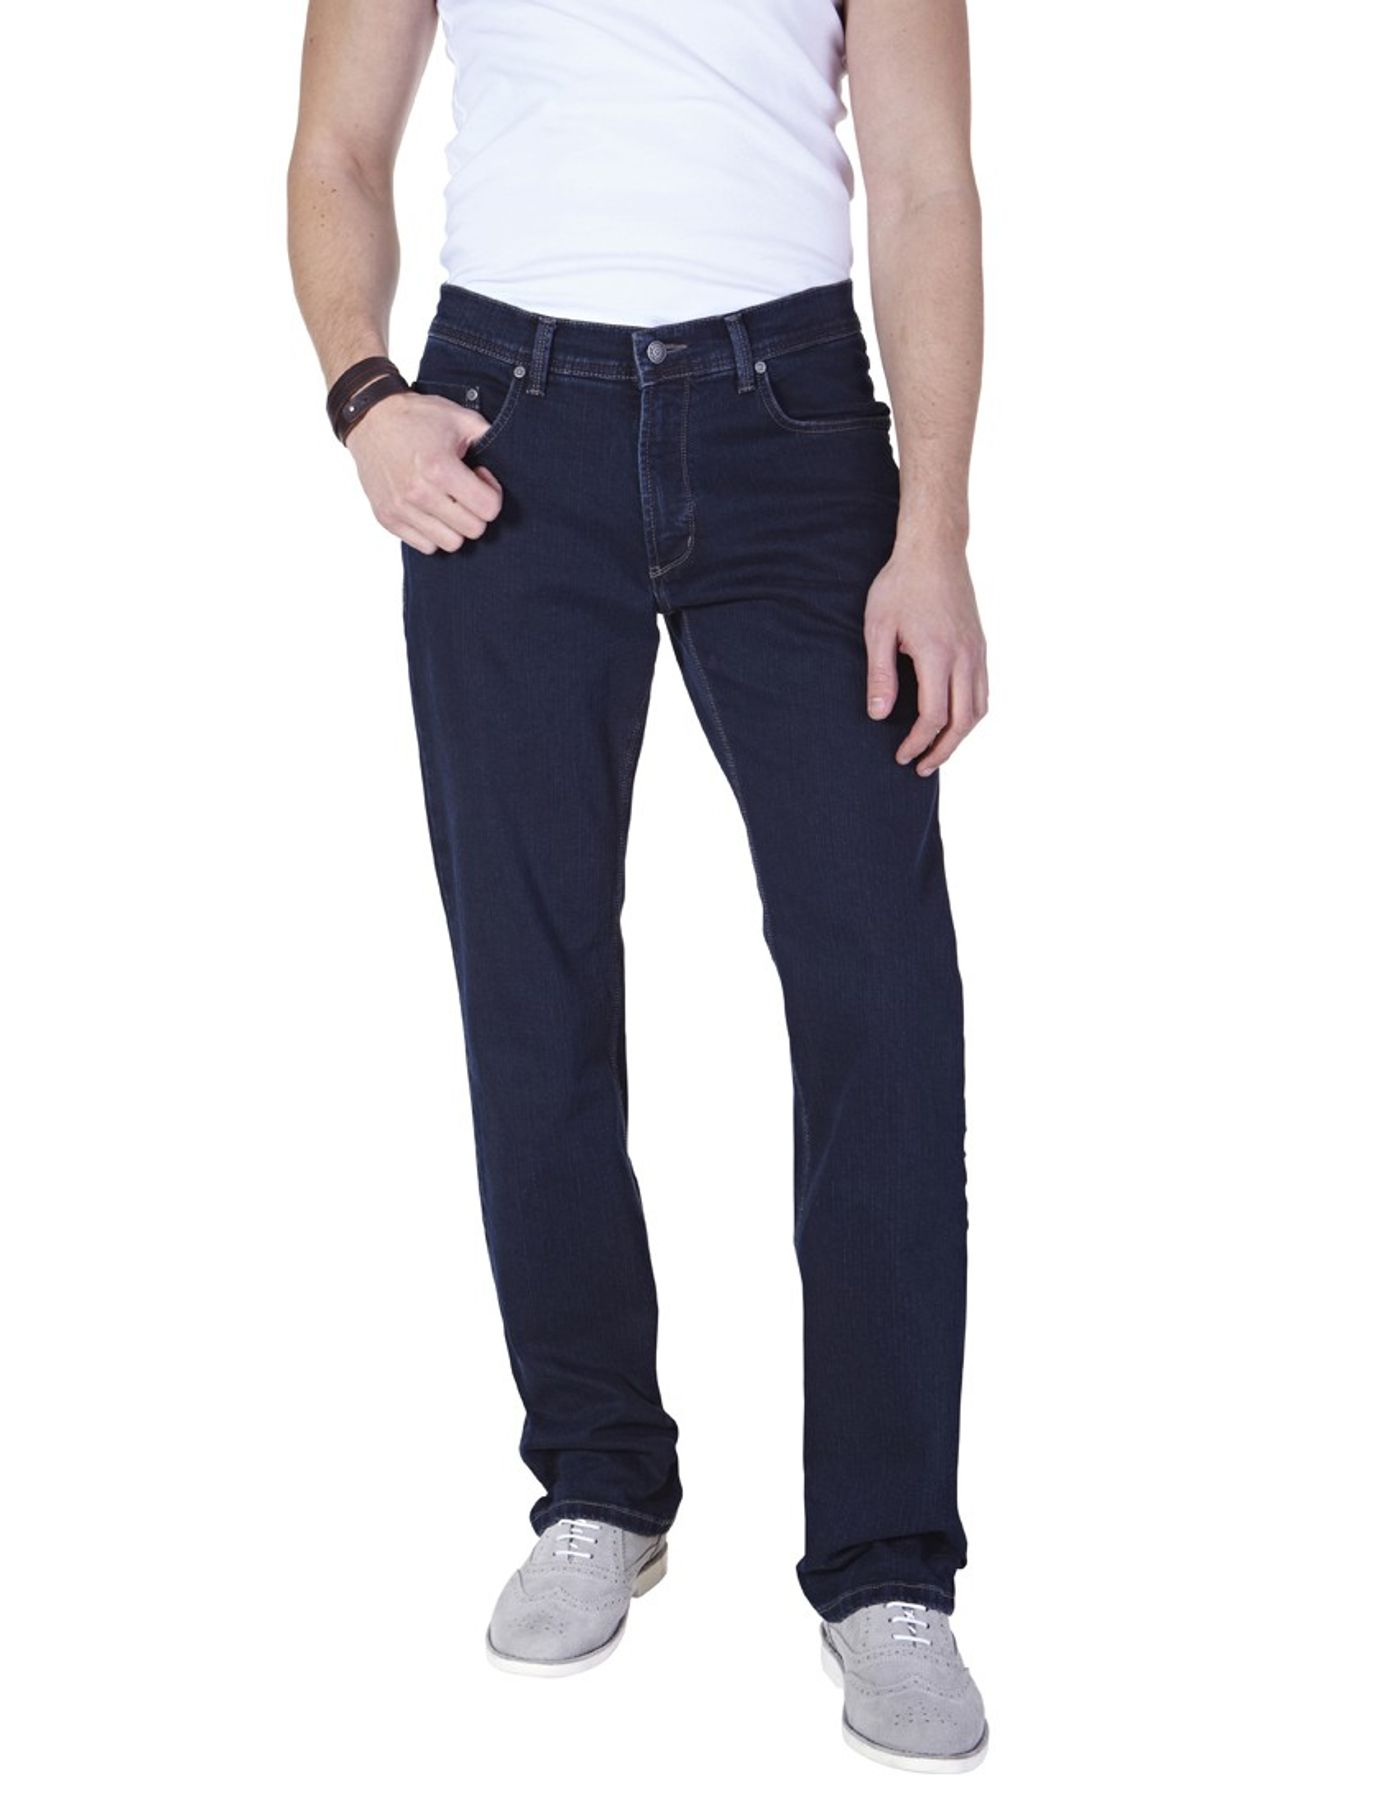 Pioneer - Herren 5-Pocket Jeans in der Farbe Dunkelblau, Regular Fit, Rando (1680 9738 02) – Bild 1